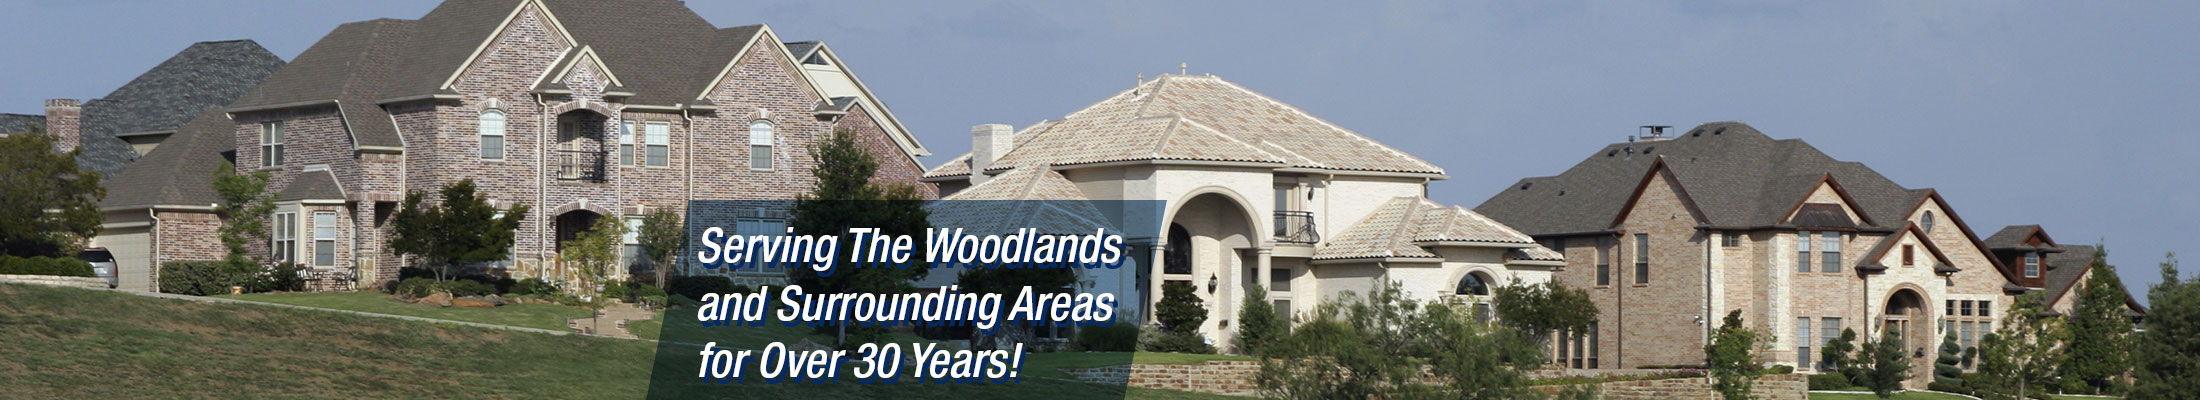 Efficient Homes in The Woodlands